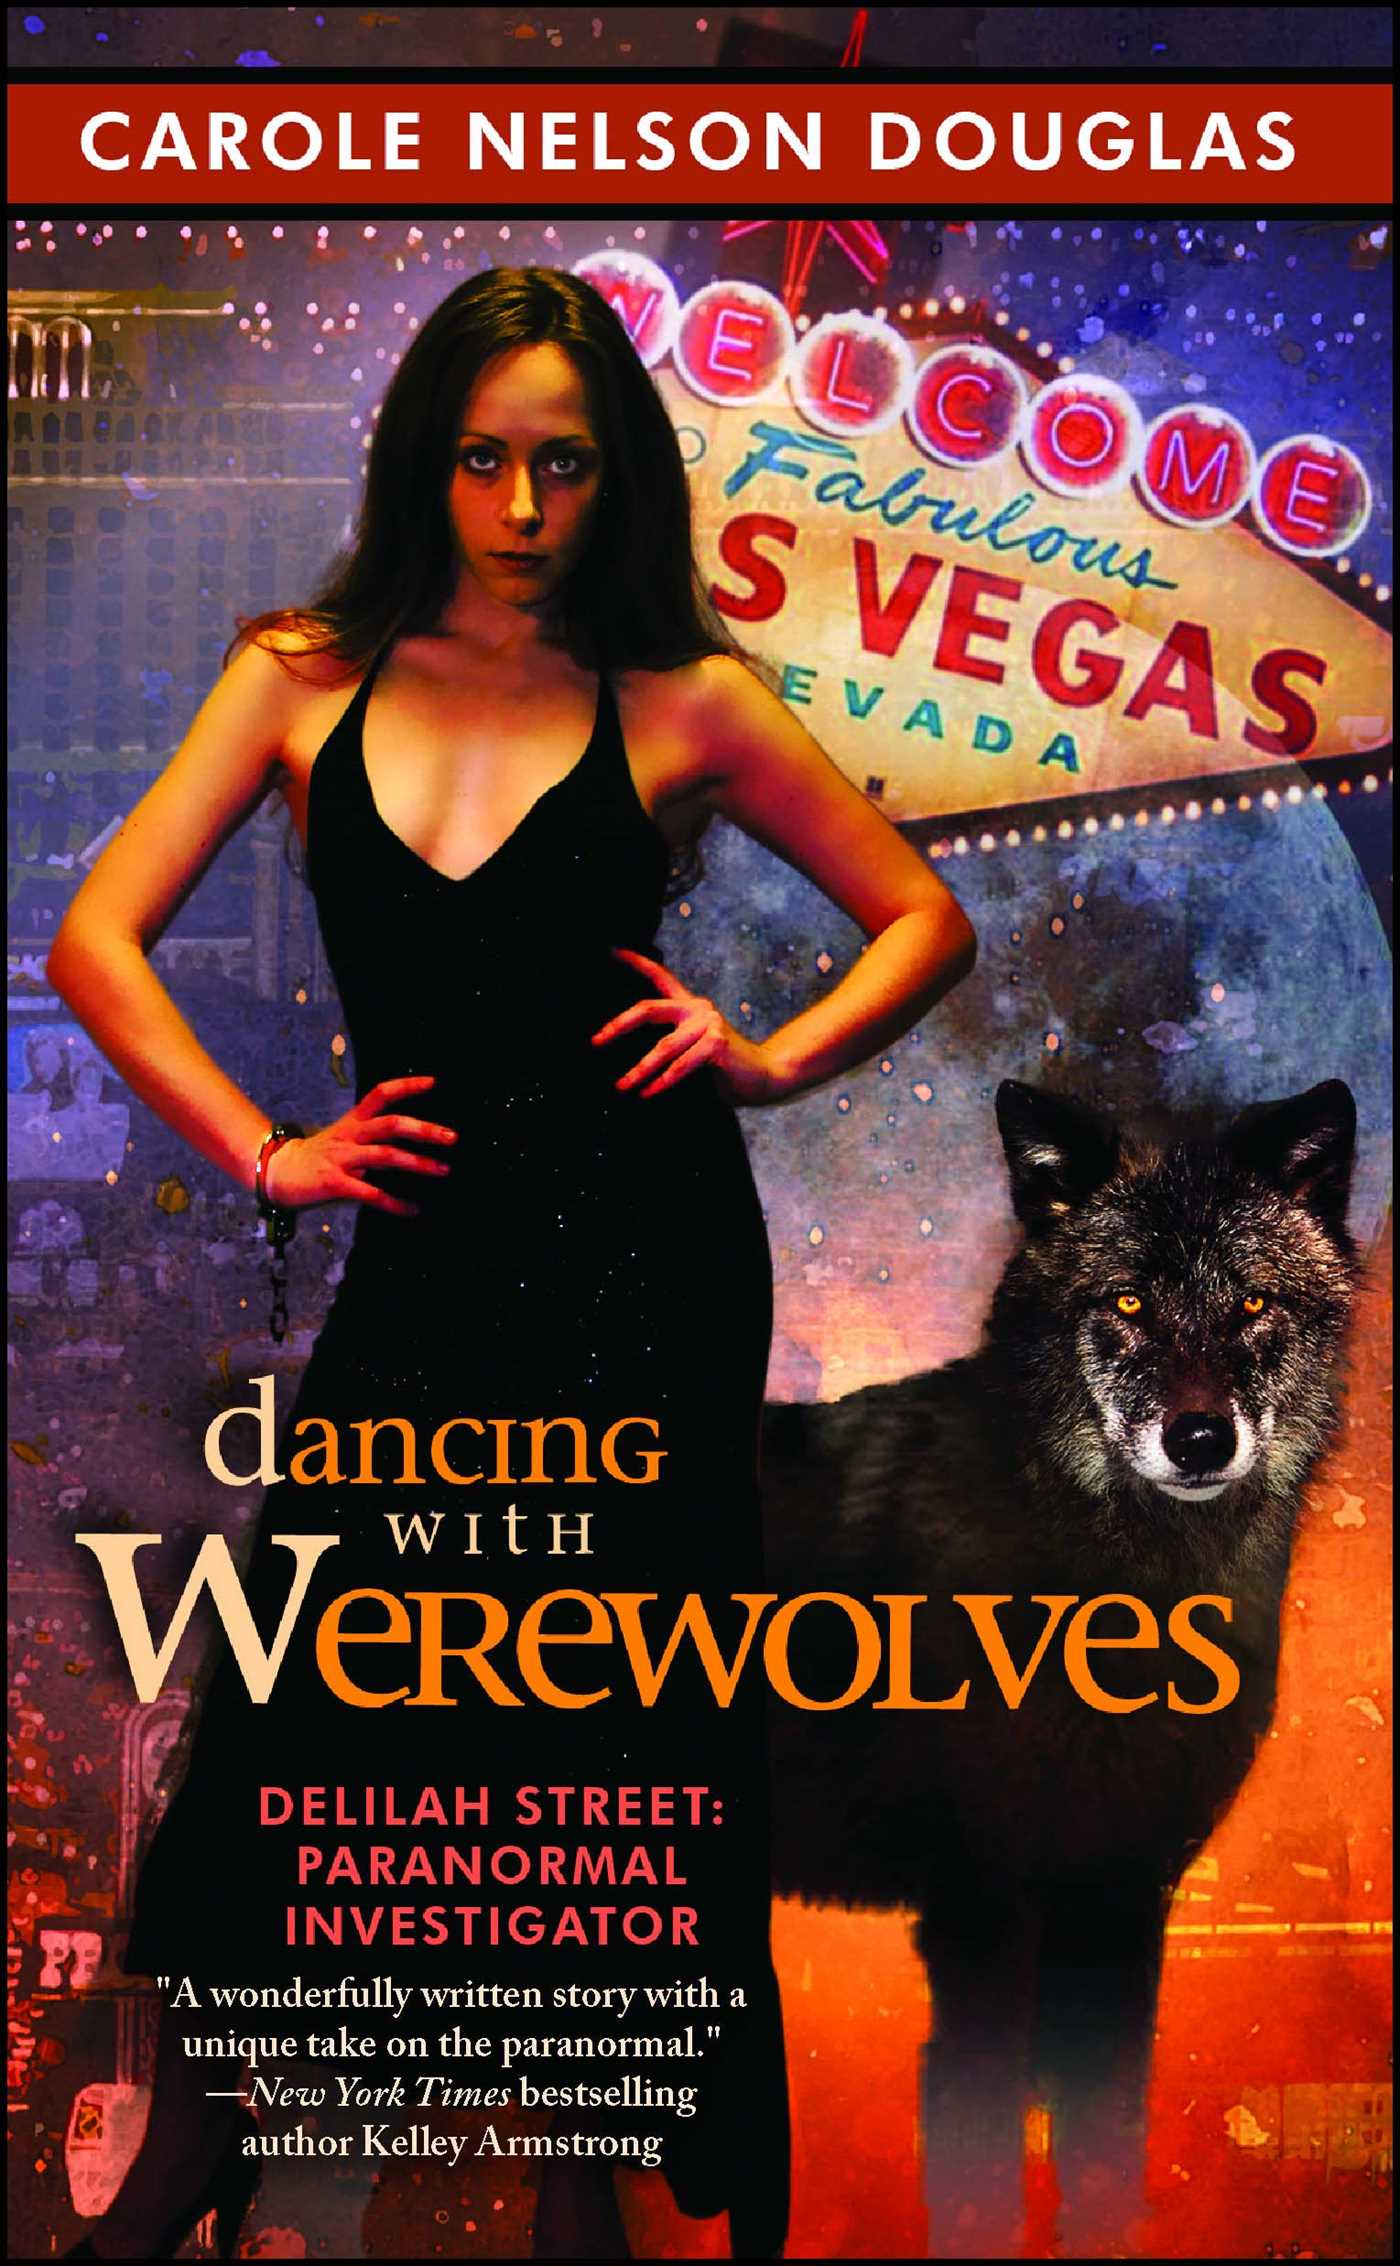 Dancing-with-werewolves-9781439167021_hr